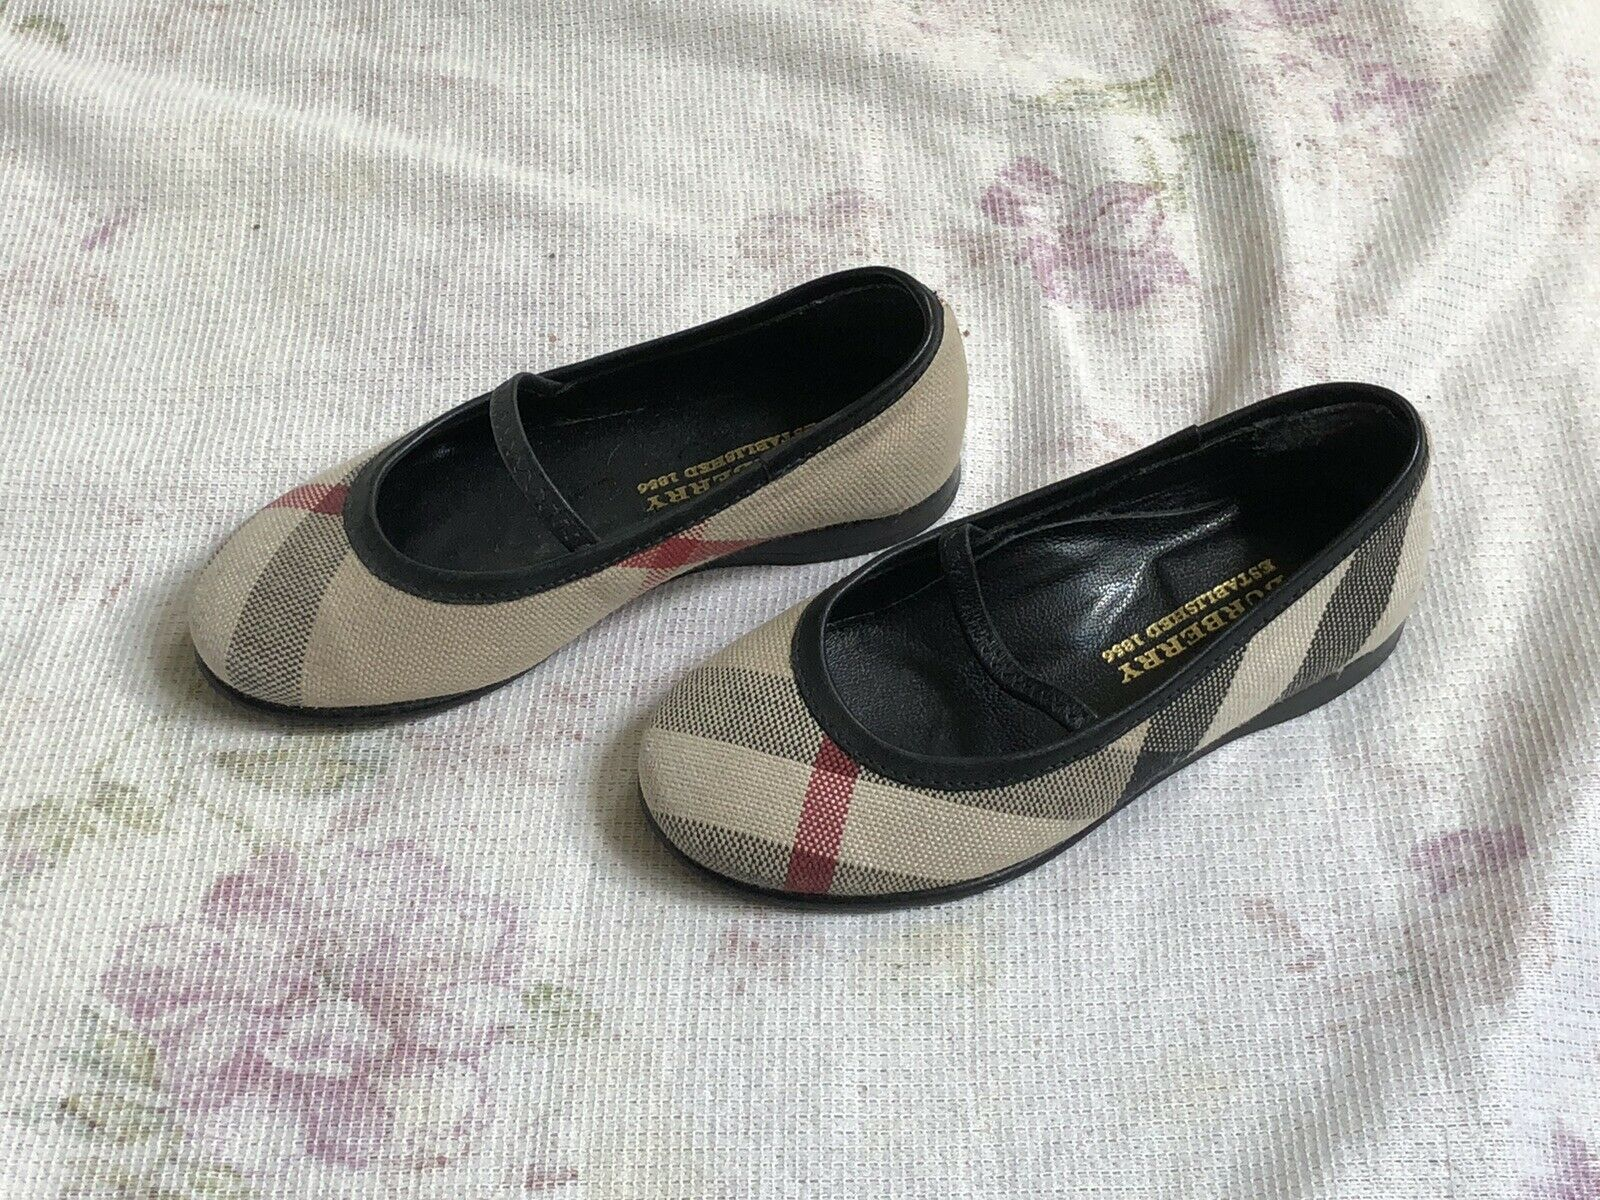 BURBERRY Mädchen Ballerina Schuhe Leder Gr.25 girls shoes slipper leather - 50.00,Kaufpreis 50,datum 24.08.2020 17:49:48,Website dhd24.com